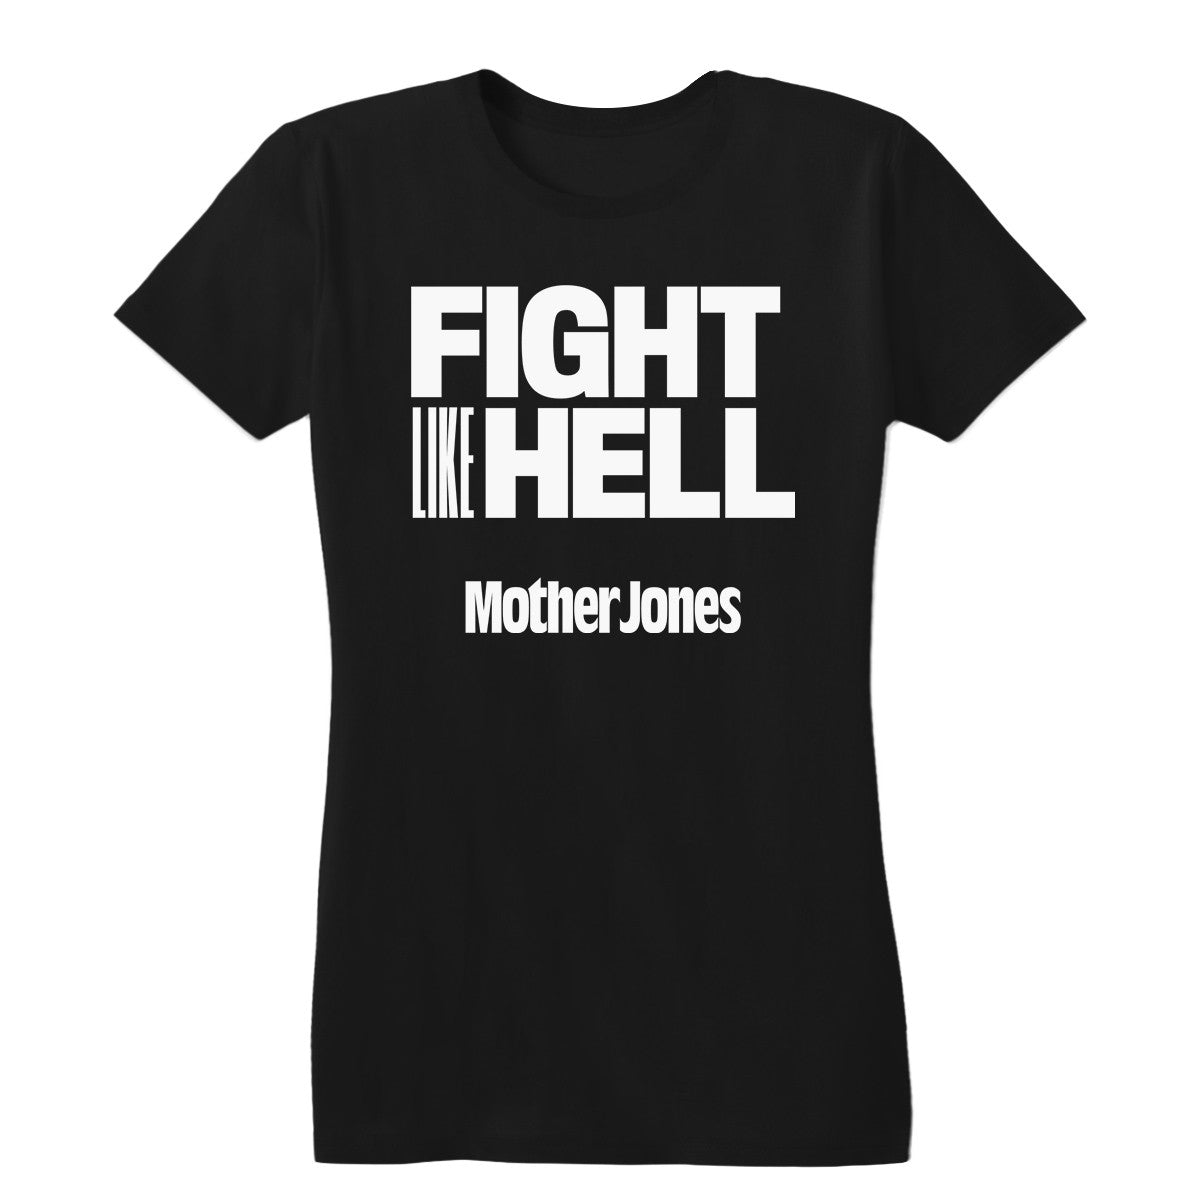 Fight like Hell (White Print) Women's Fitted Tee